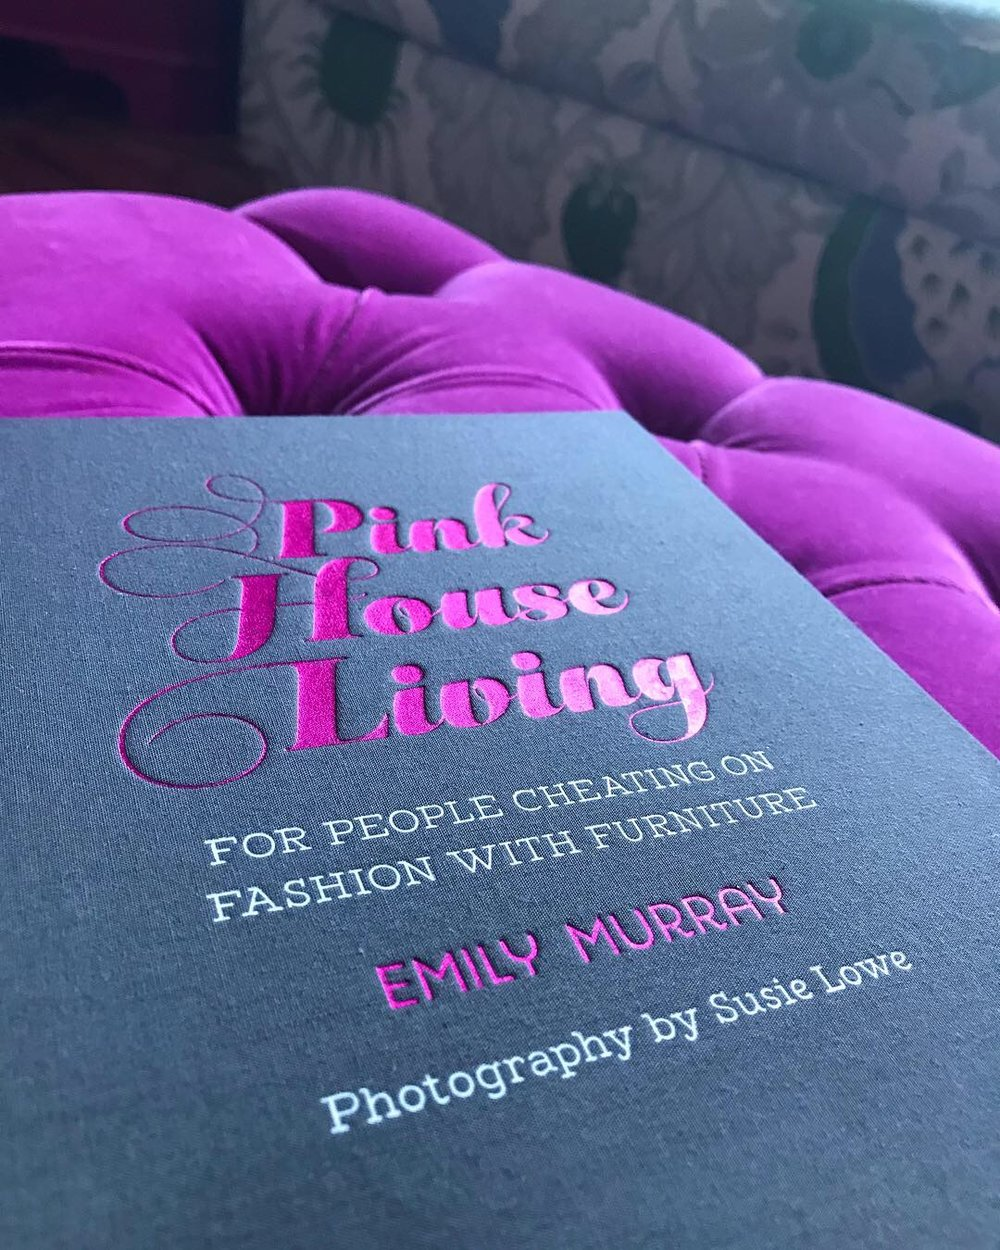 Pink House Living interiors home decor book by Emily Murray